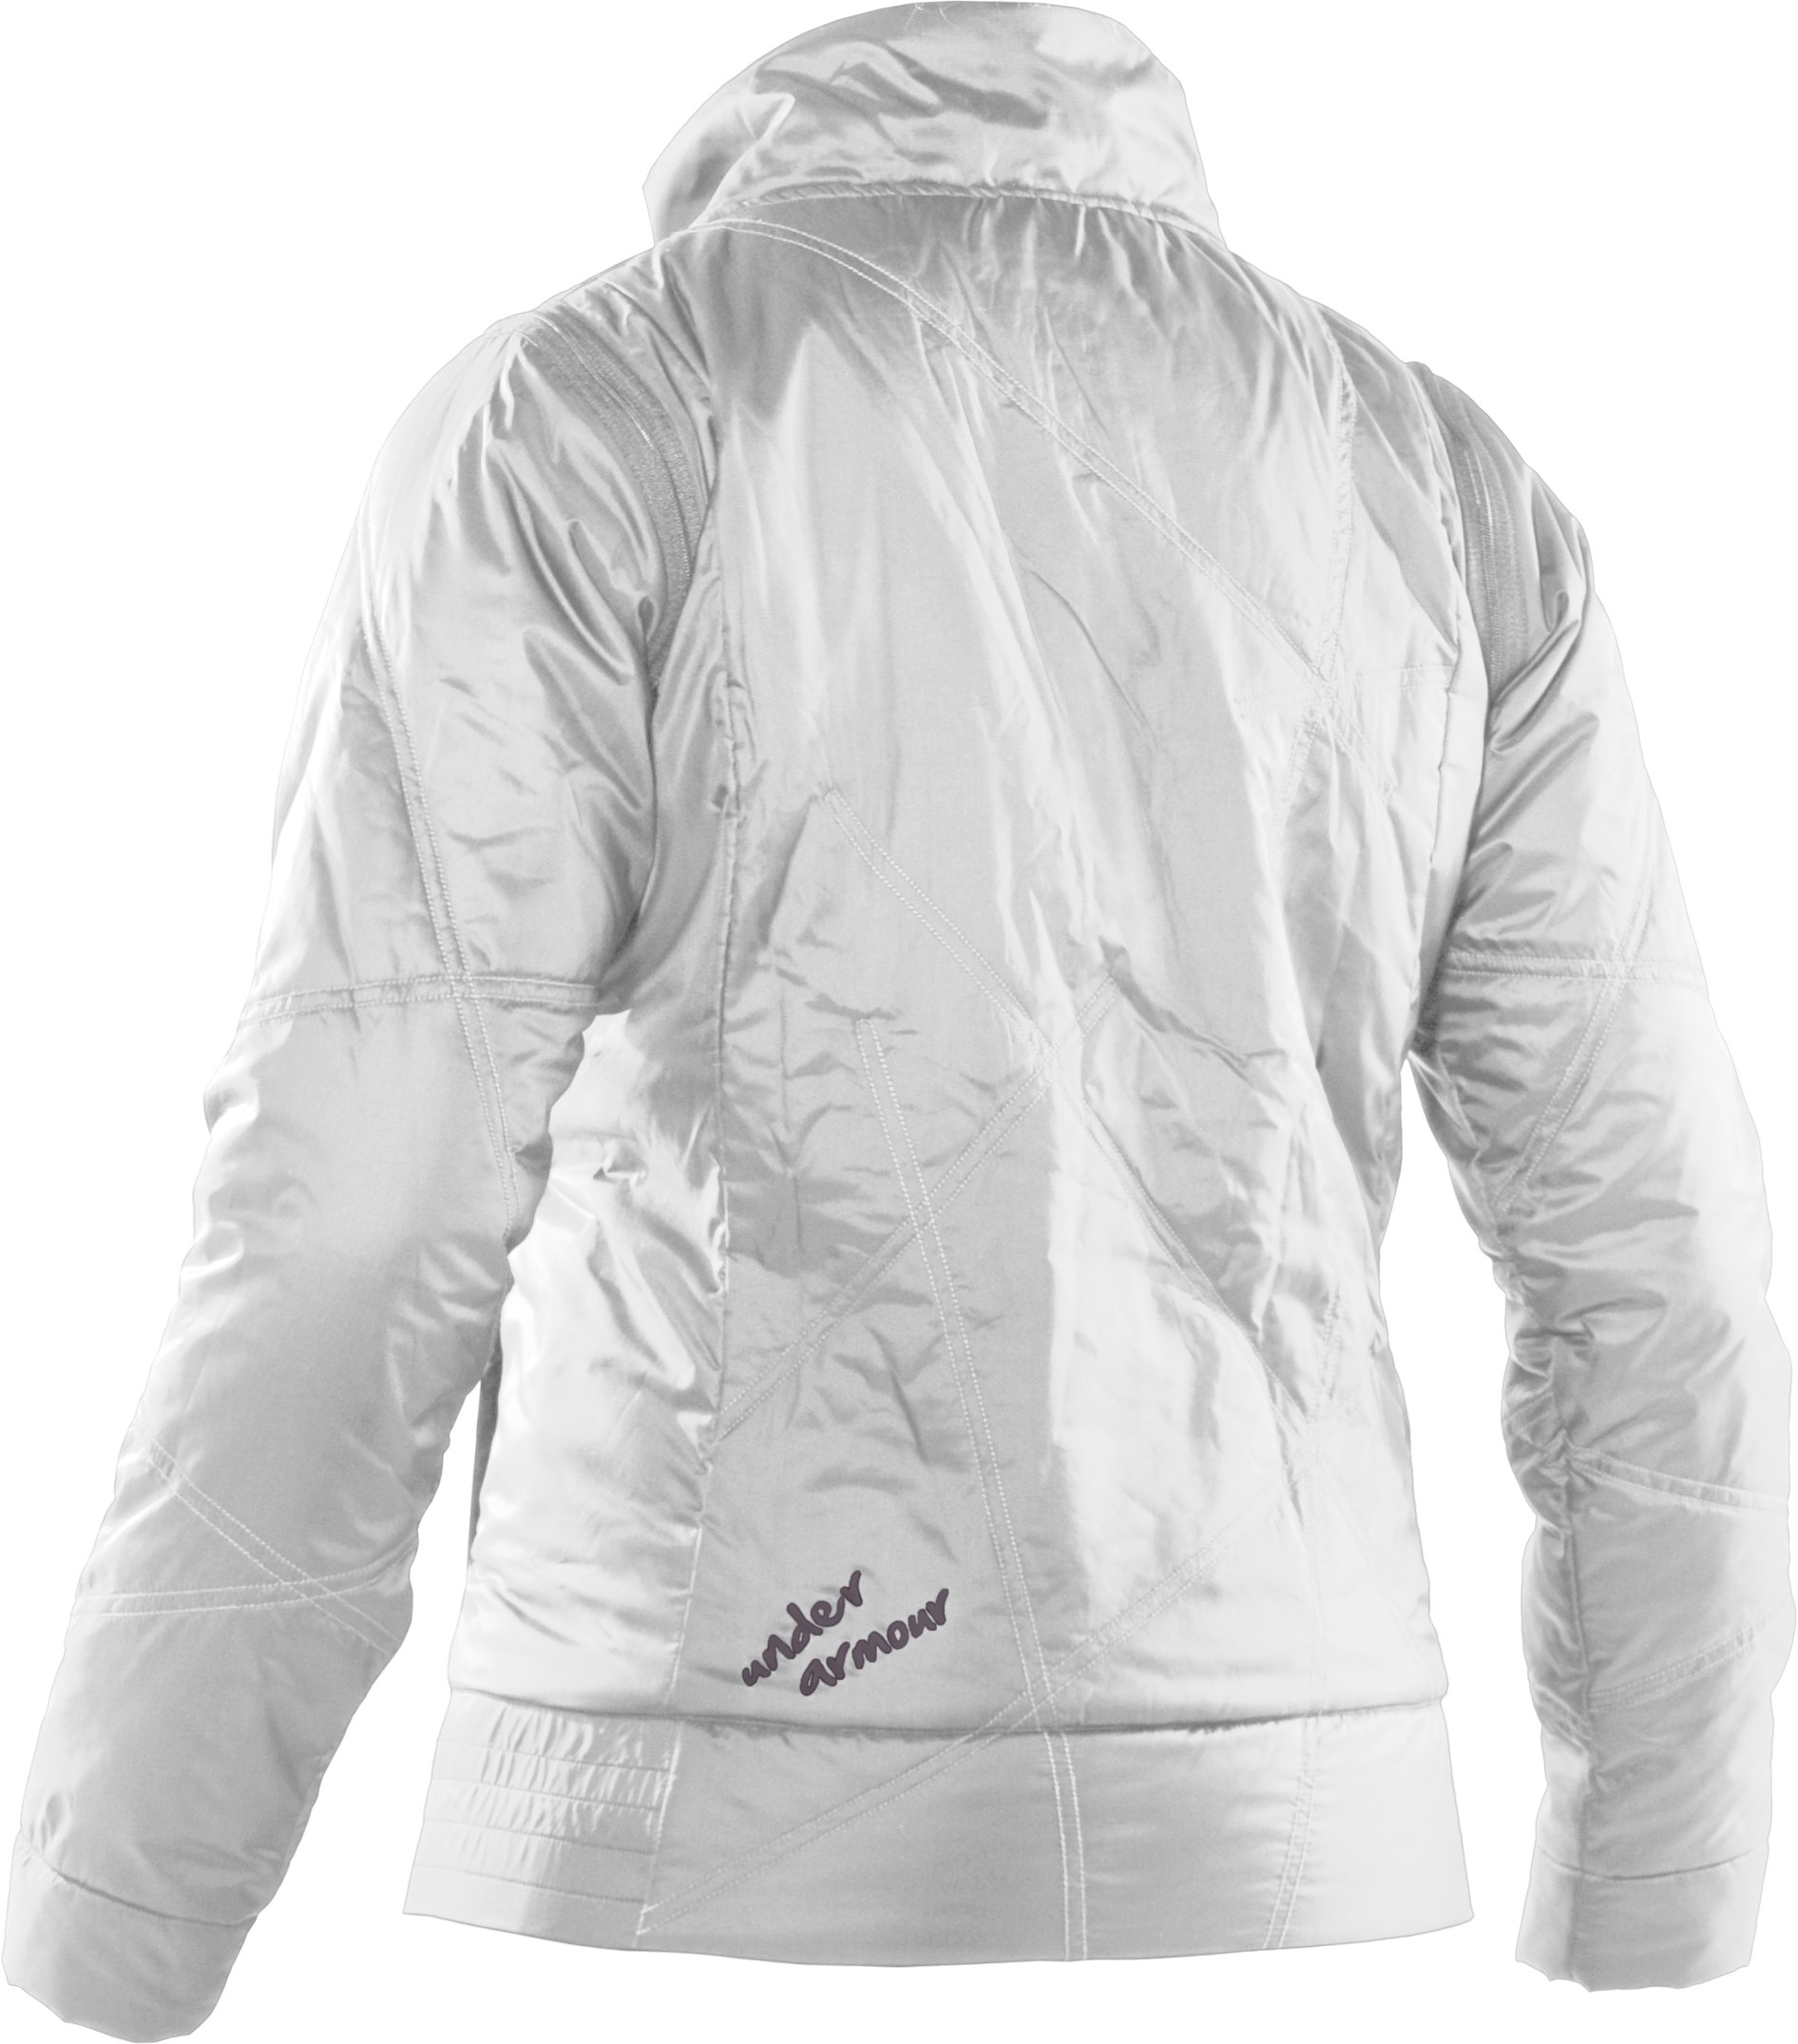 Women's Choice ArmourLoft® Jacket II, White,